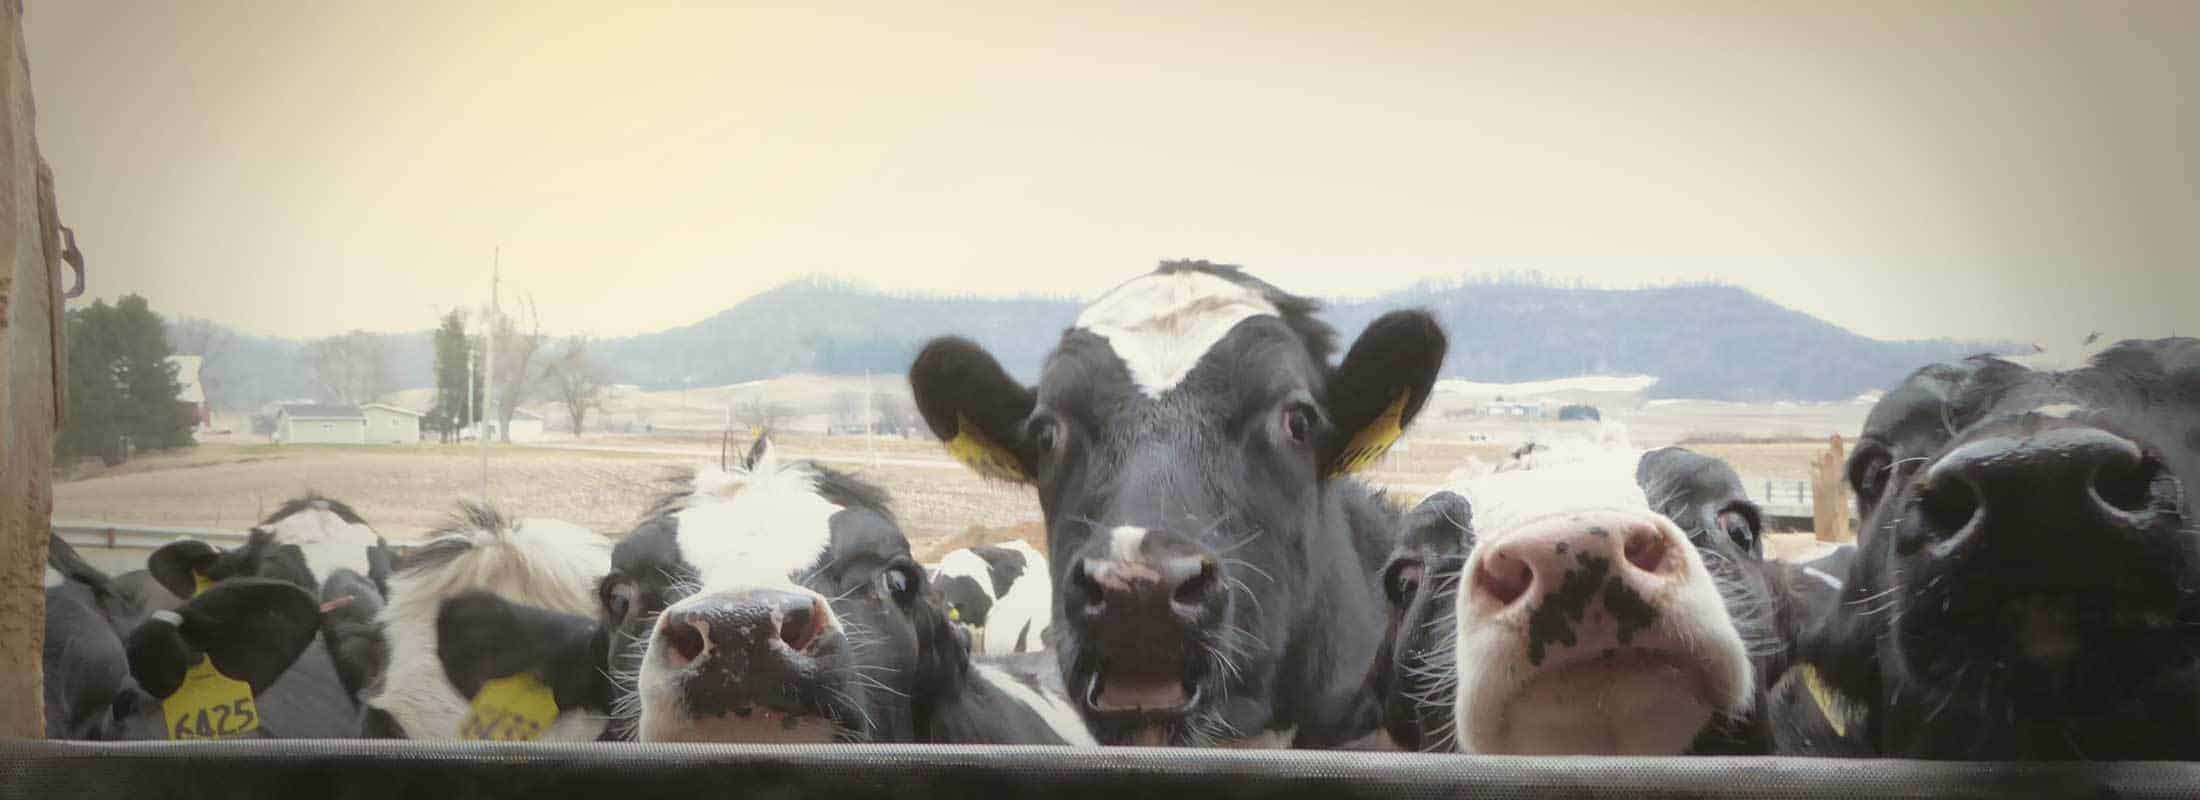 new-cowsmo-slide-cows